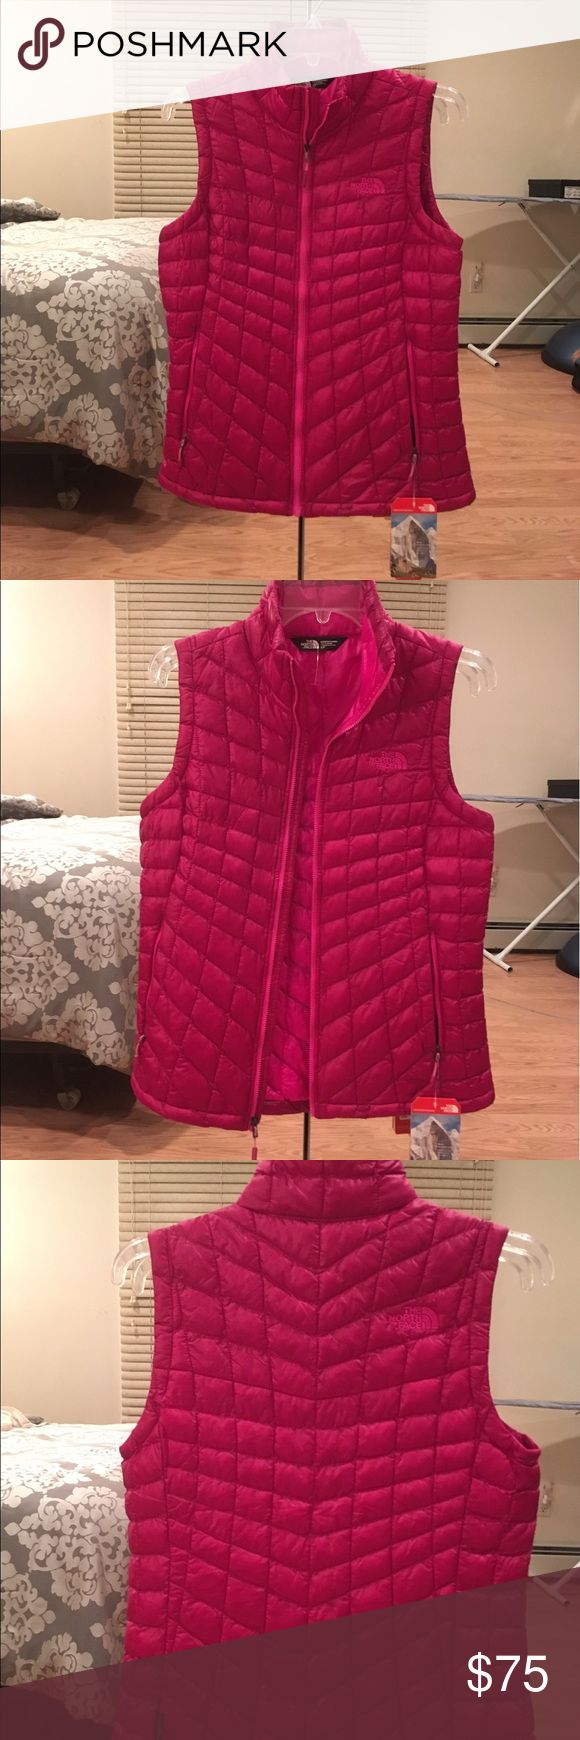 The North Face Women's Thermoball vest The North Face women's thermoball vest. Brand new with tags The North Face Jackets & Coats Vests